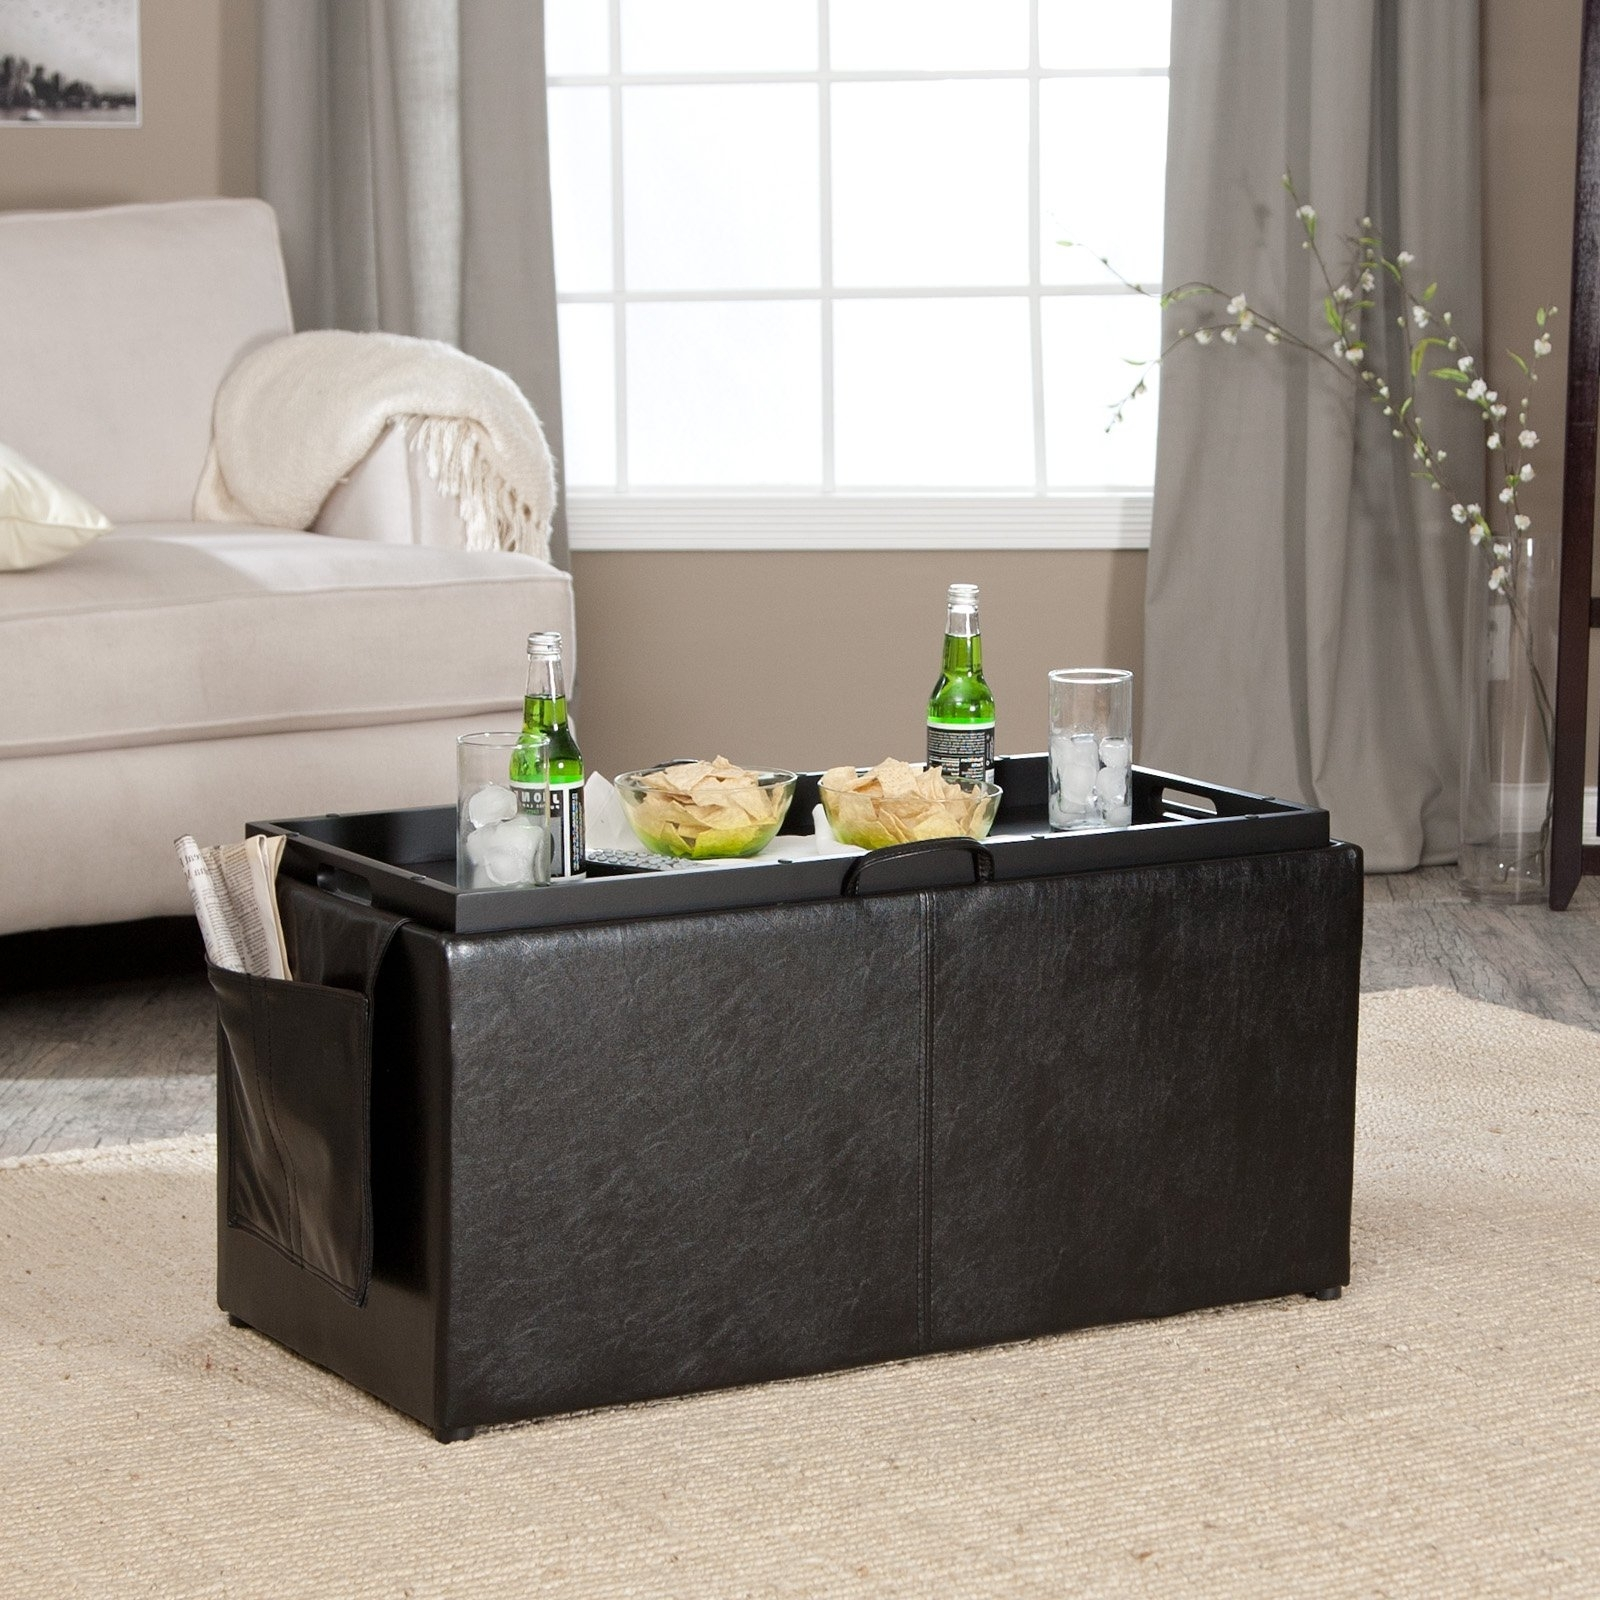 Ottomans With Tray Intended For Preferred Hartley Coffee Table Storage Ottoman With Tray – Side Ottomans (View 6 of 15)